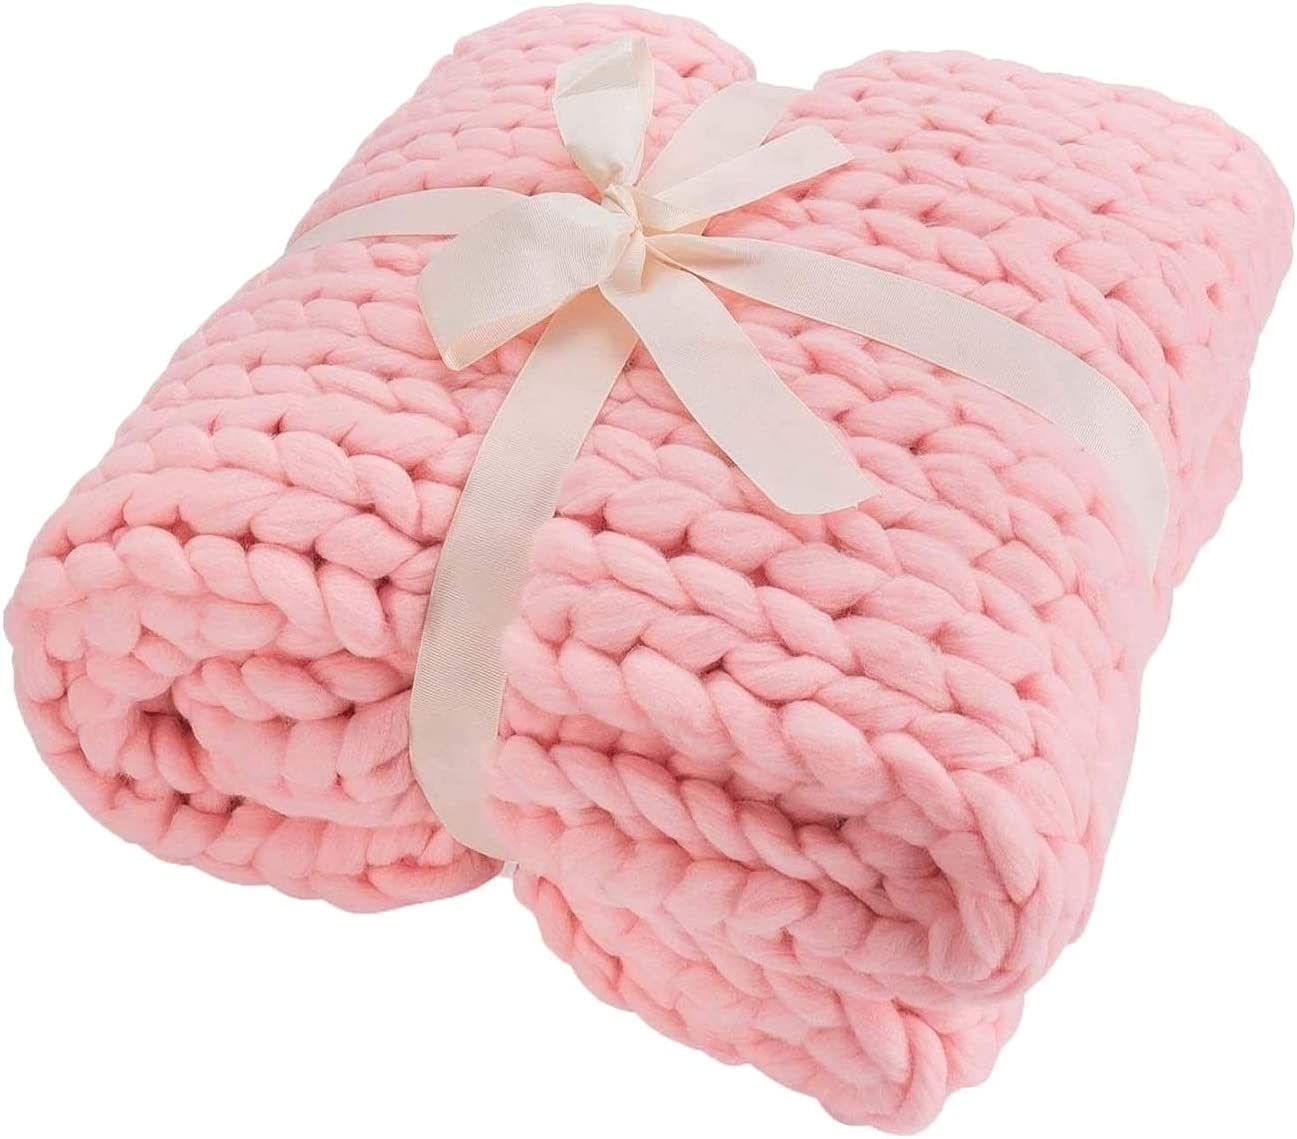 All items free shipping ZCXBHD Chunky Air Conditioning Max 55% OFF Blanket Giant Arm Knitting